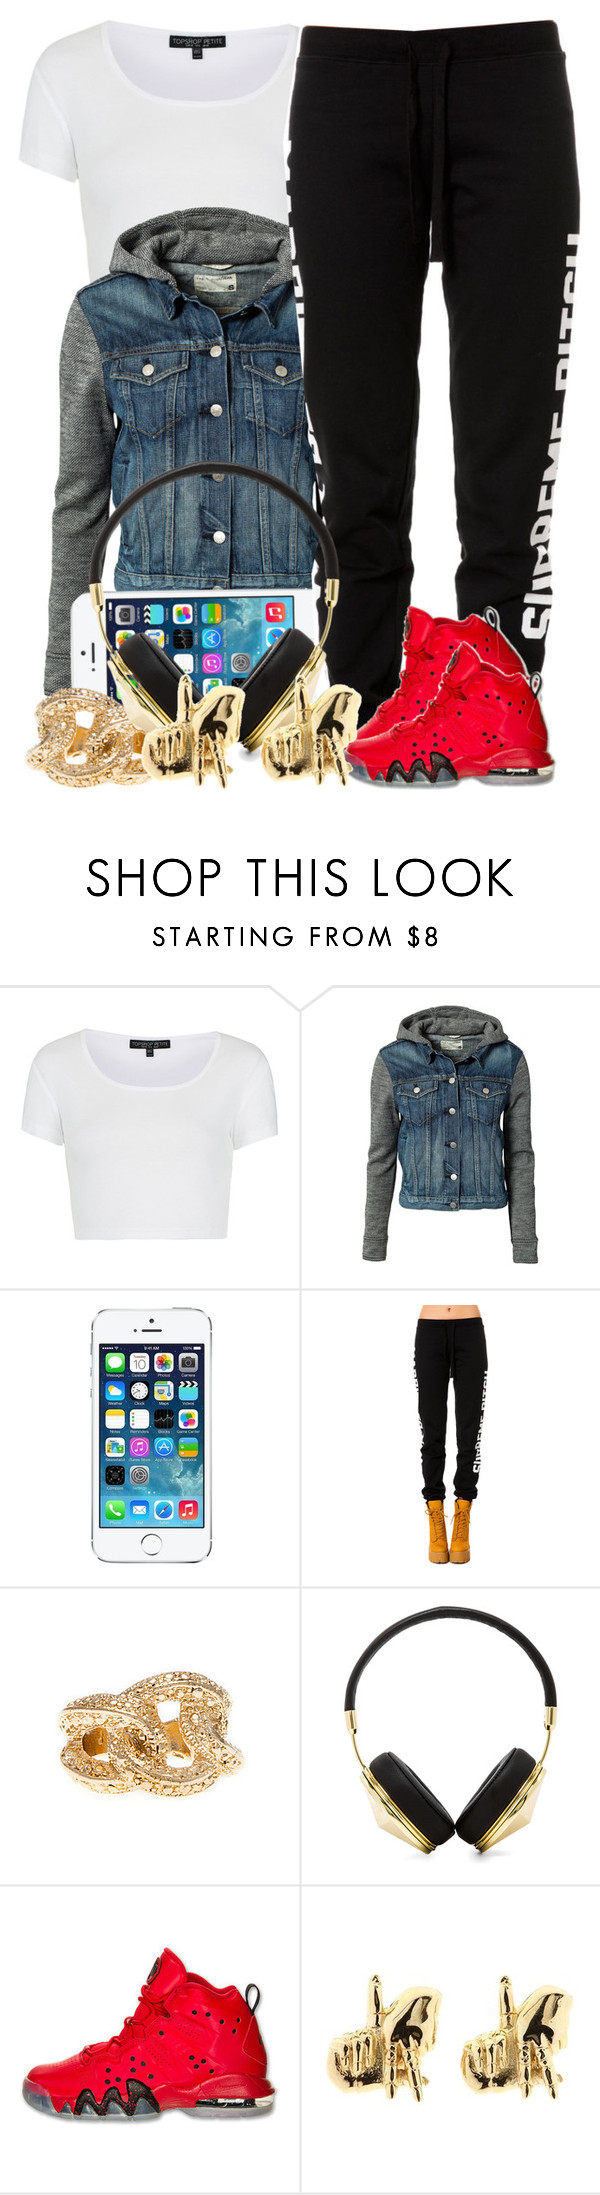 """""""3 17 14"""" by miizz-starburst ❤ liked on Polyvore featuring Topshop, rag & bone, Married to the Mob, Frends, NIKE and Han Cholo"""